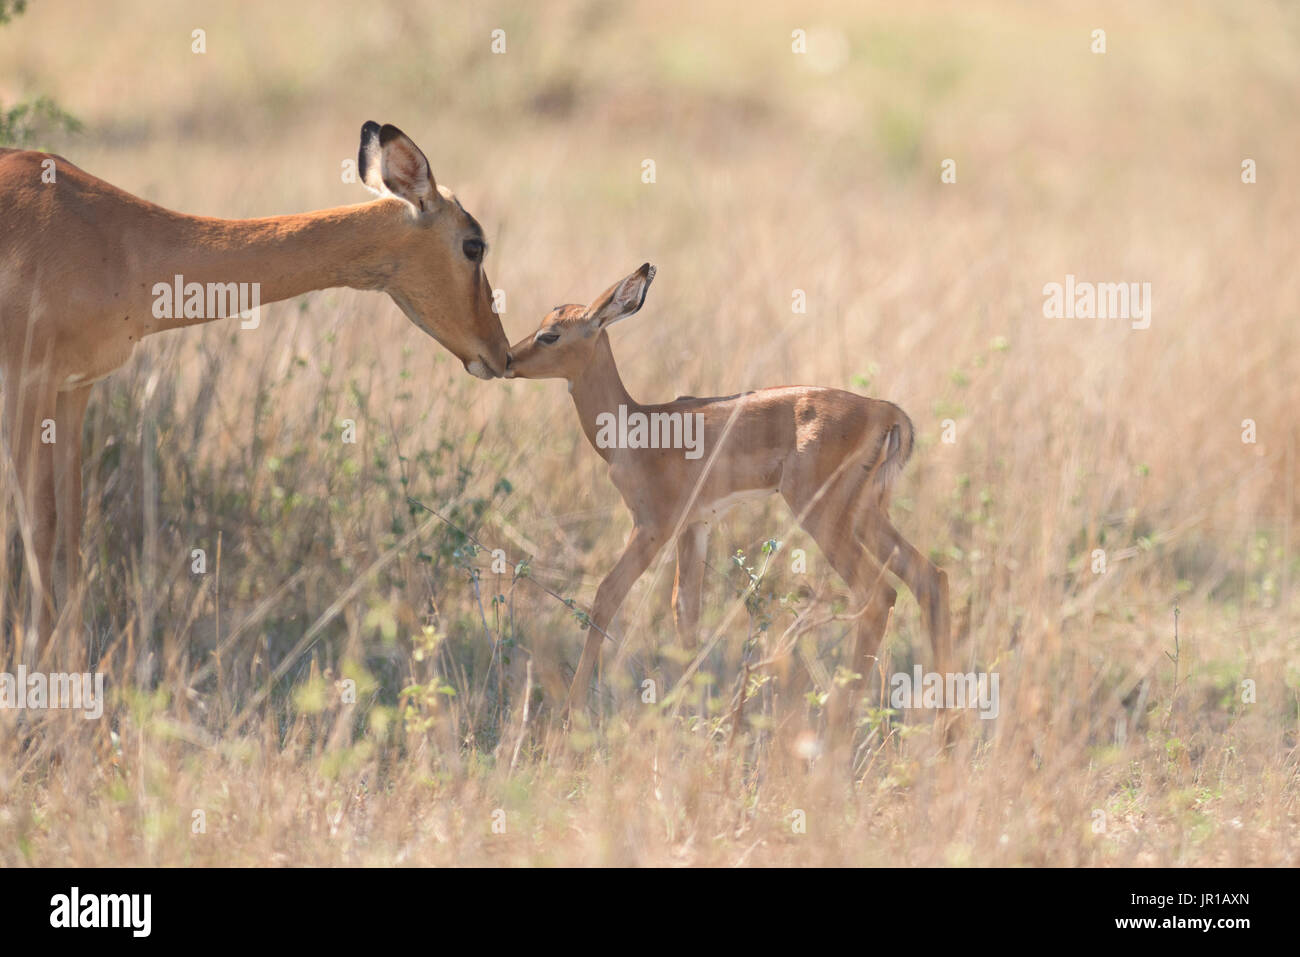 Impala (Aepyceros melampus) cuddling between mother and young, Kgalagadi, South Africa - Stock Image